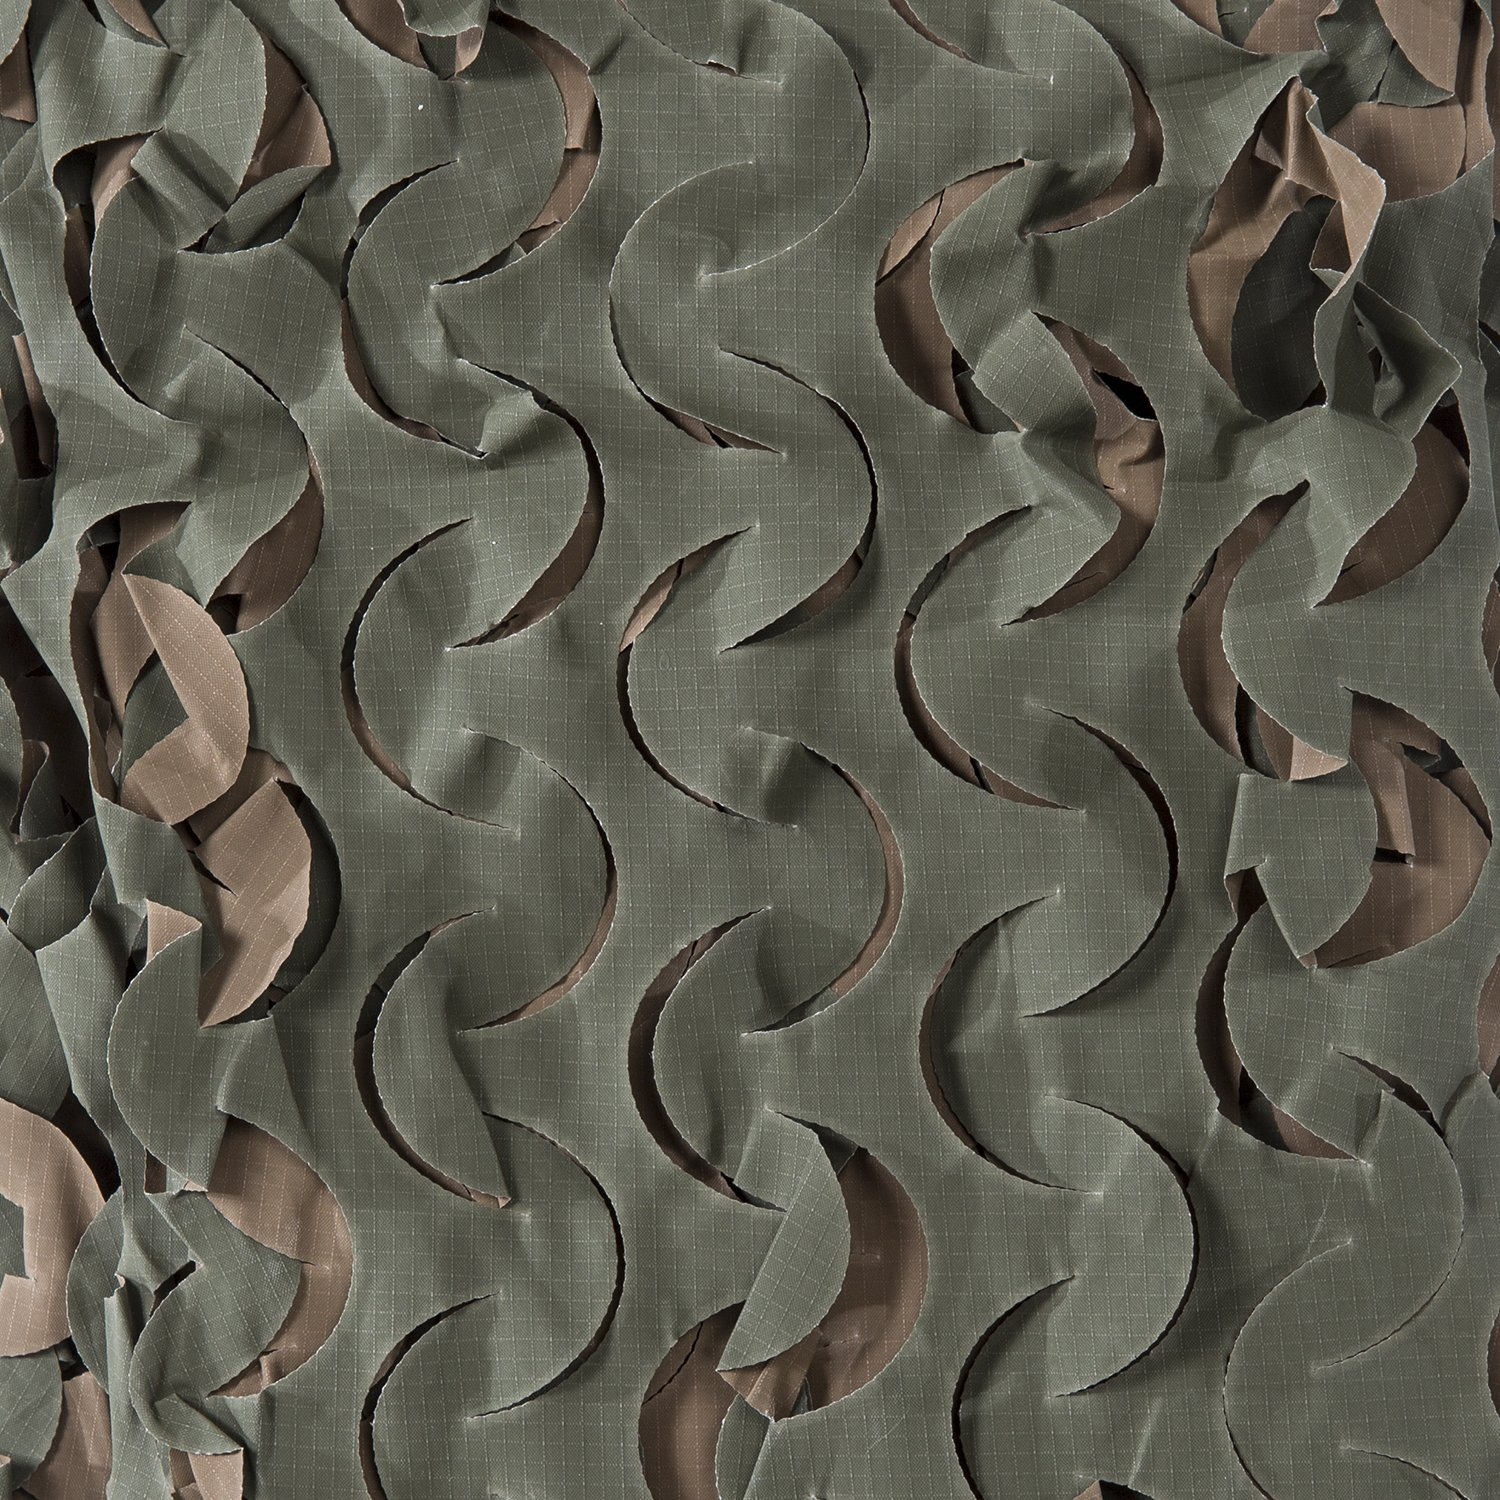 CamoSystems Premium Series Ultra-lite Military Spec Camouflage Netting, Bulk Available